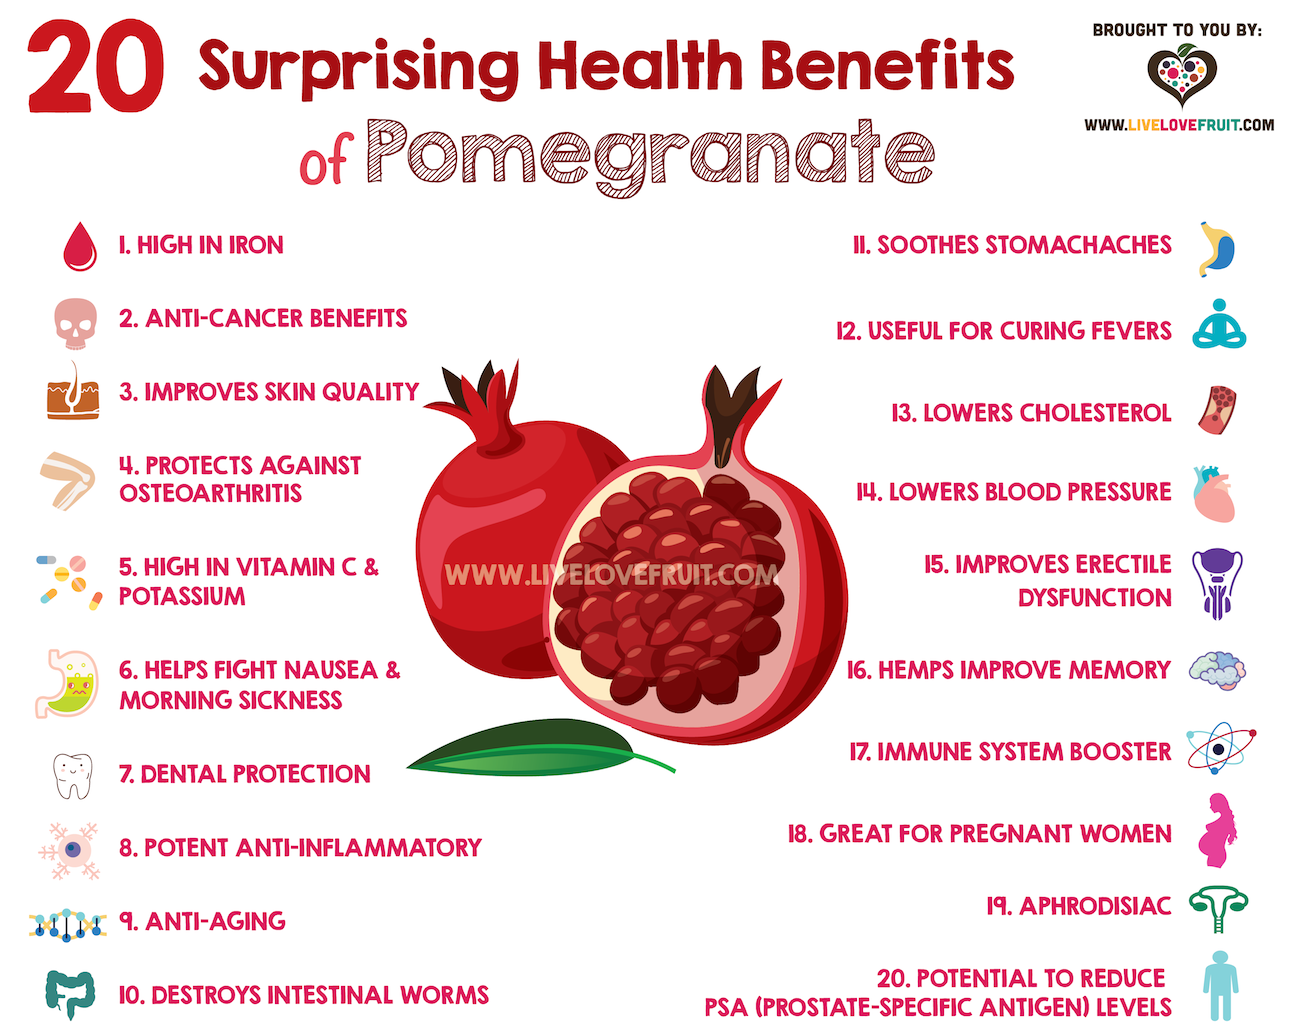 essays about health benefits of pomegranate Essays about health benefits of pomegranate an act of heroism essay literature review essay plan sat essay questions and answers desde o ano 2000, construmos nossa.